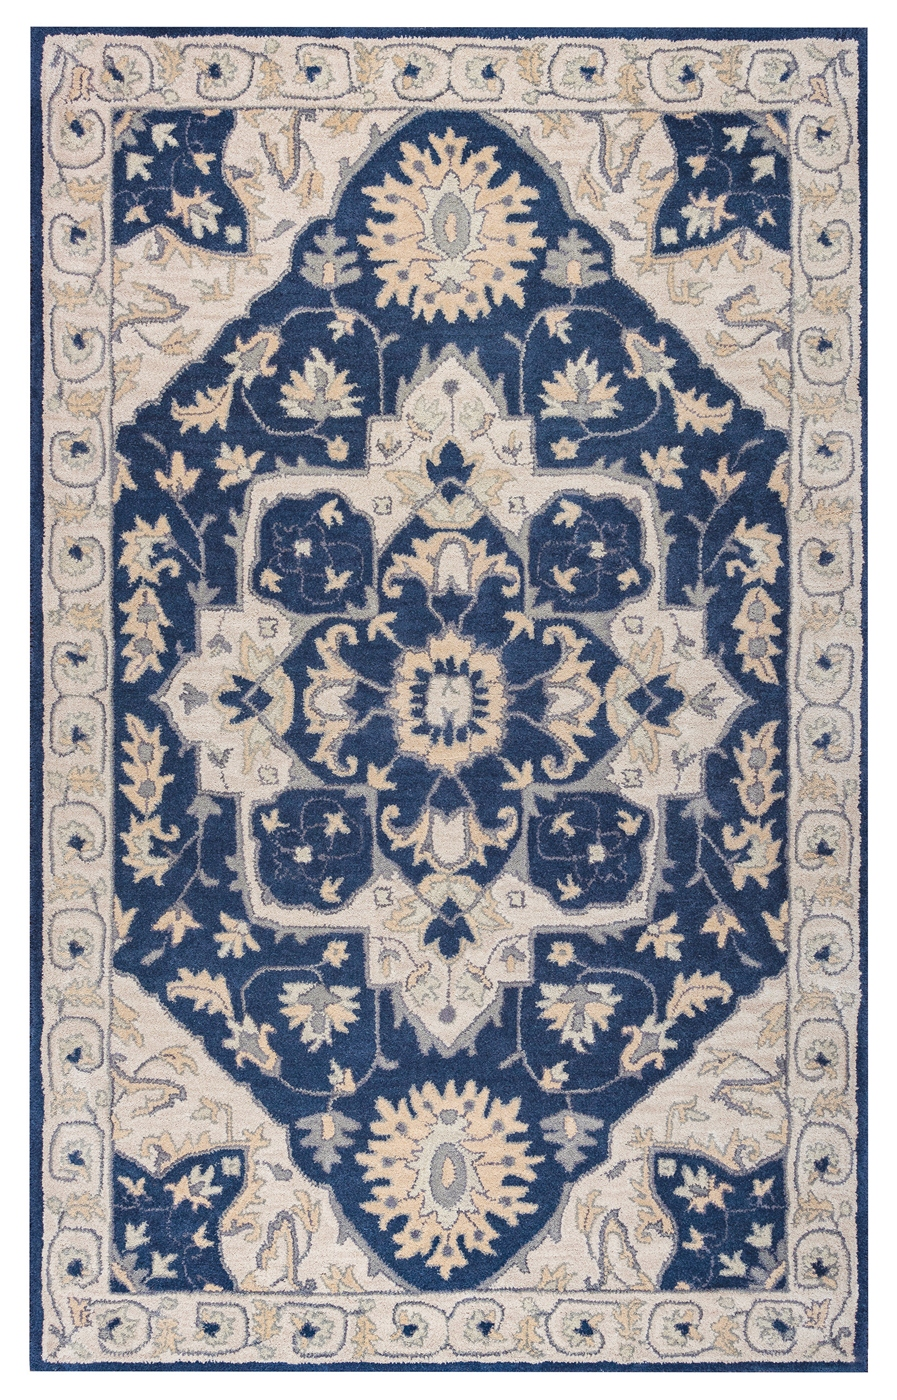 Valintino Vine Medallion Wool Area Rug In Blue Gray